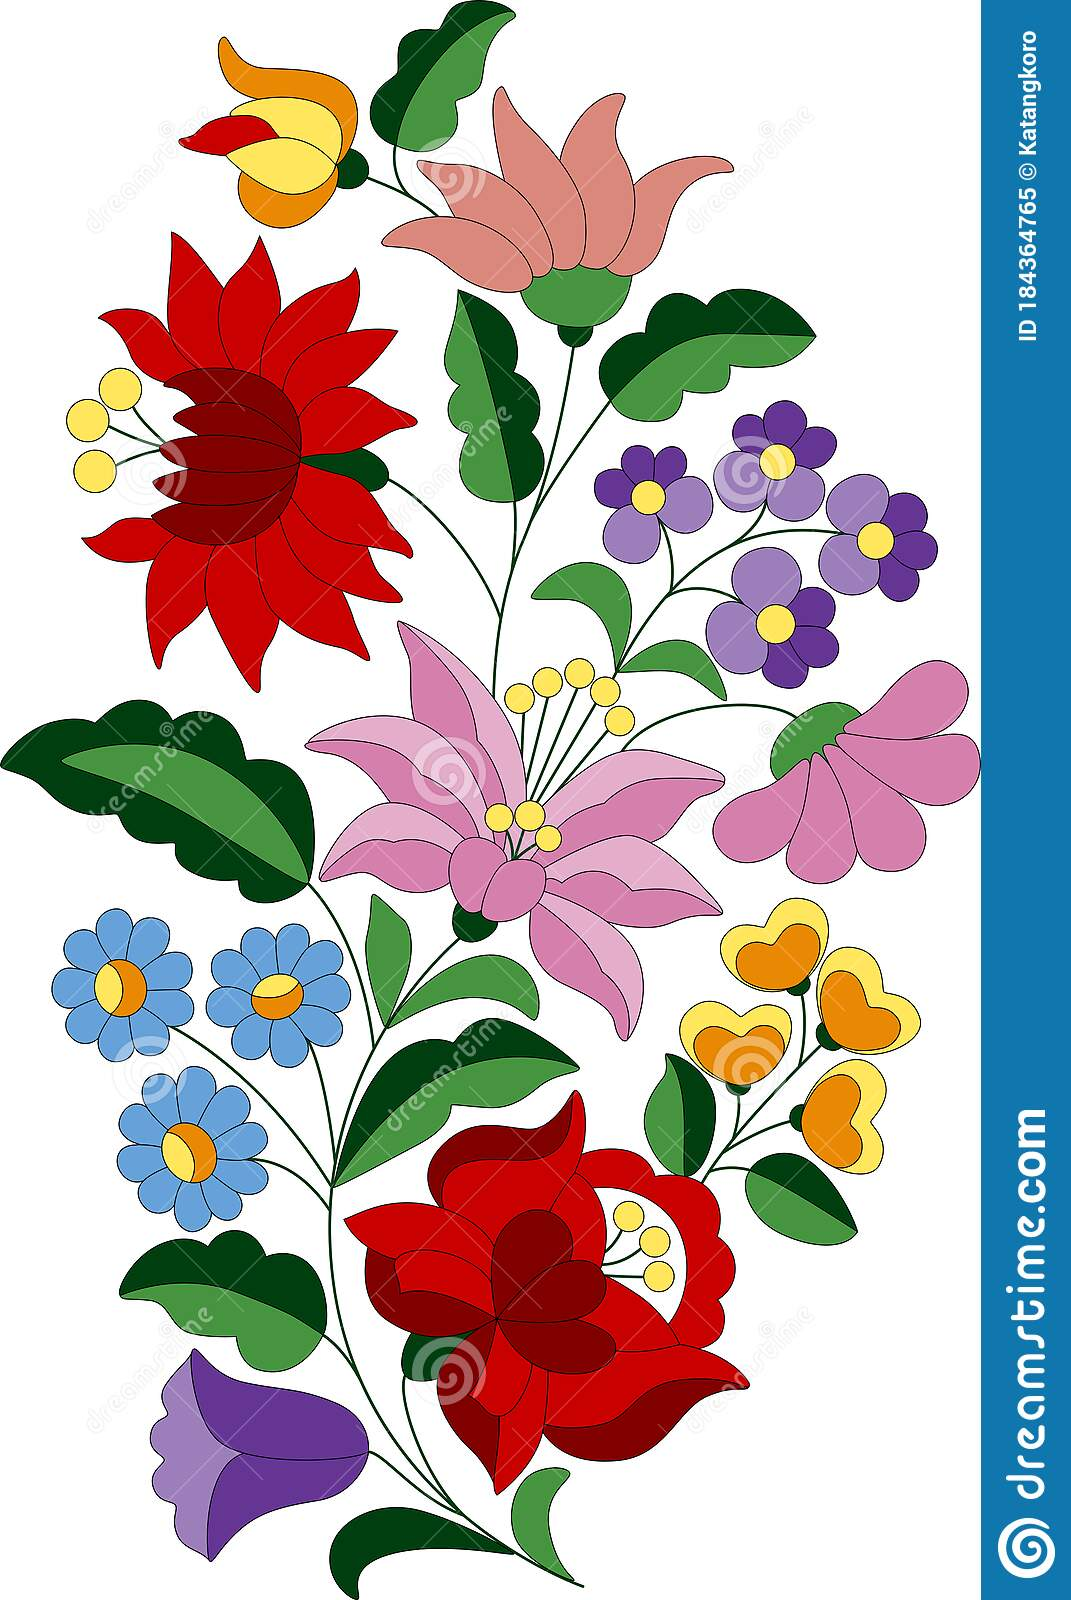 Flower Bouquet Embroidery Pattern 20 Stock Vector   Illustration of ...